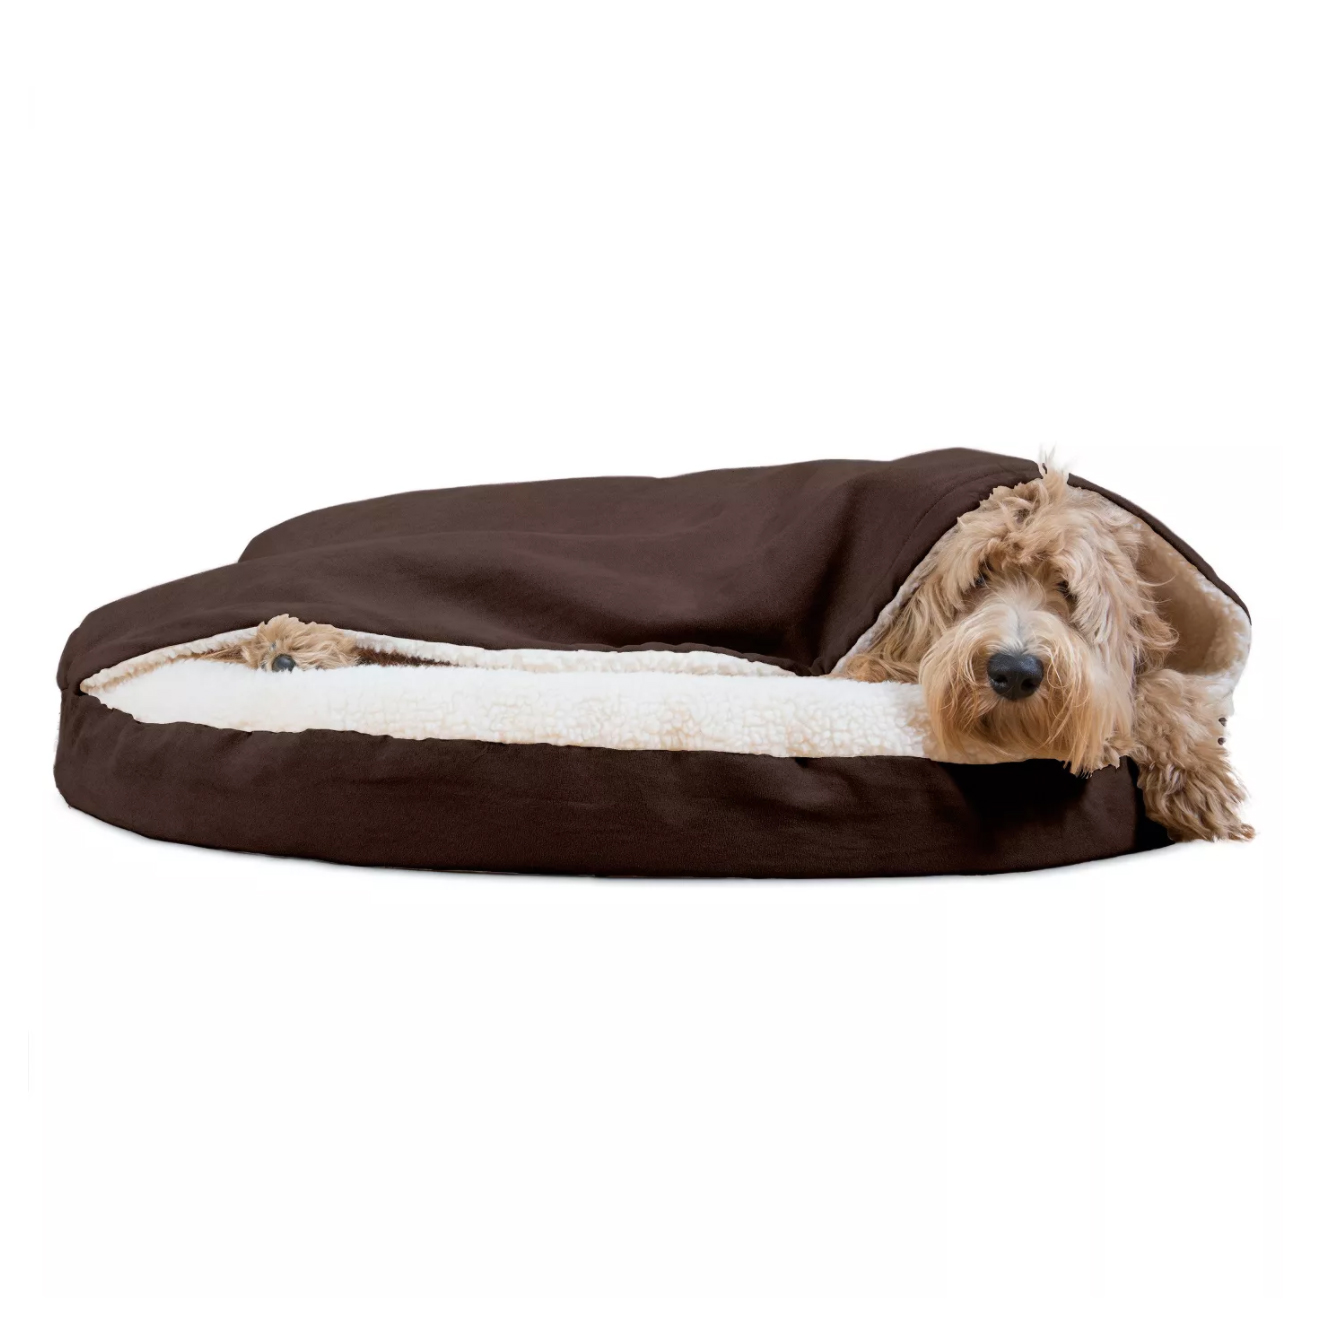 furhaven-faux-sheepskin-snuggery-orthopedic-dog-bed